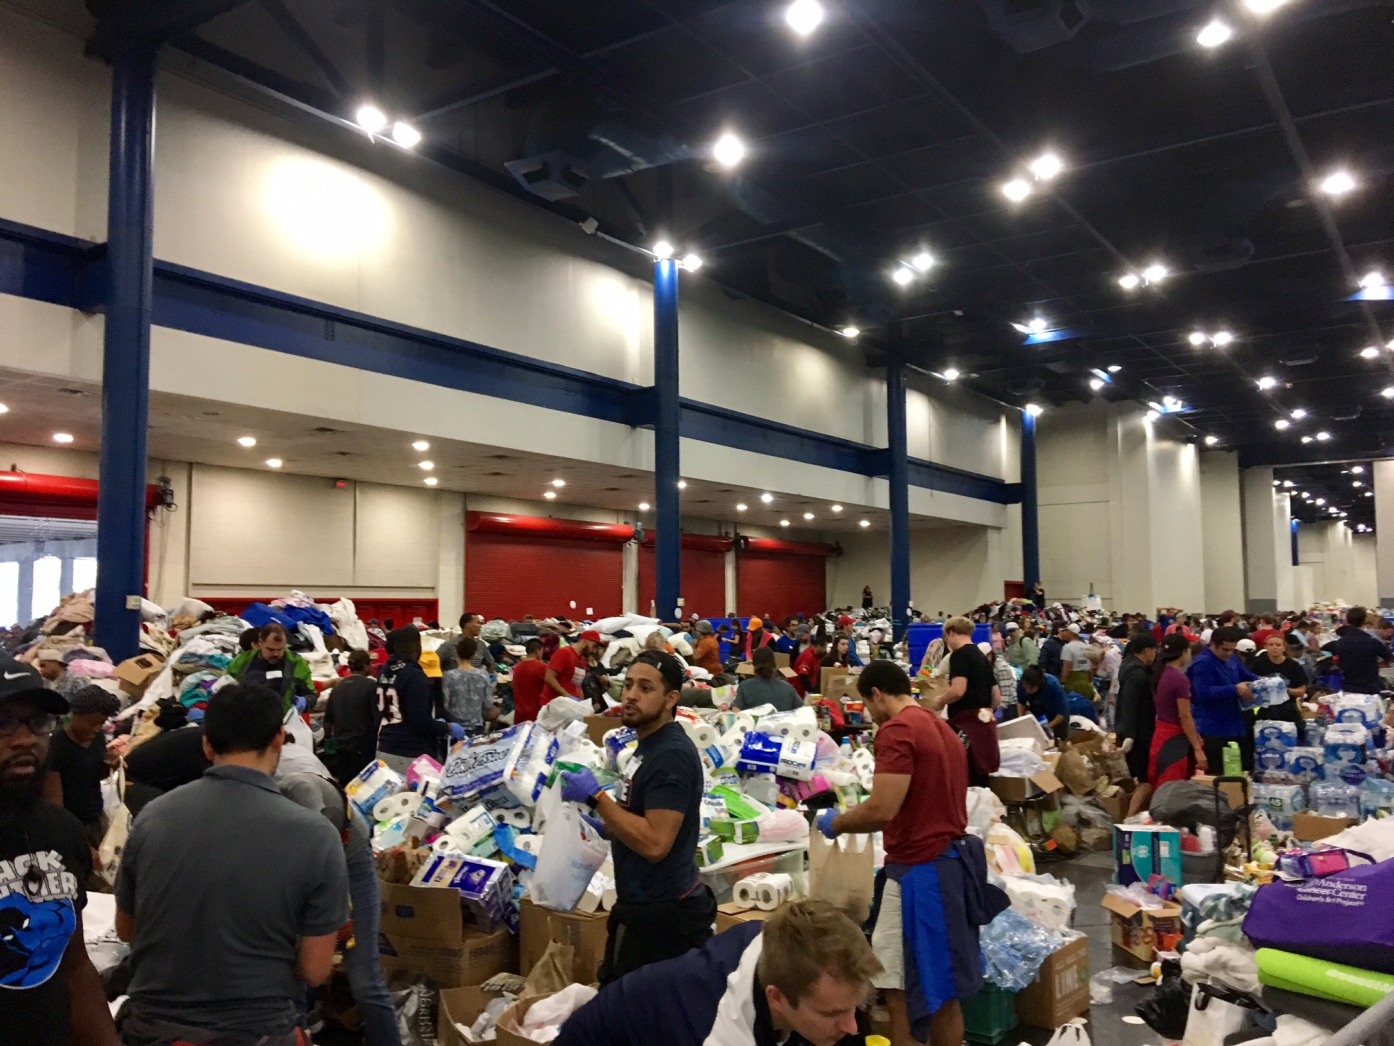 https://itsnothouitsme.com/2017/08/29/how-to-volunteer-at-convention-center-harvey-houston/#jp-carousel-10200